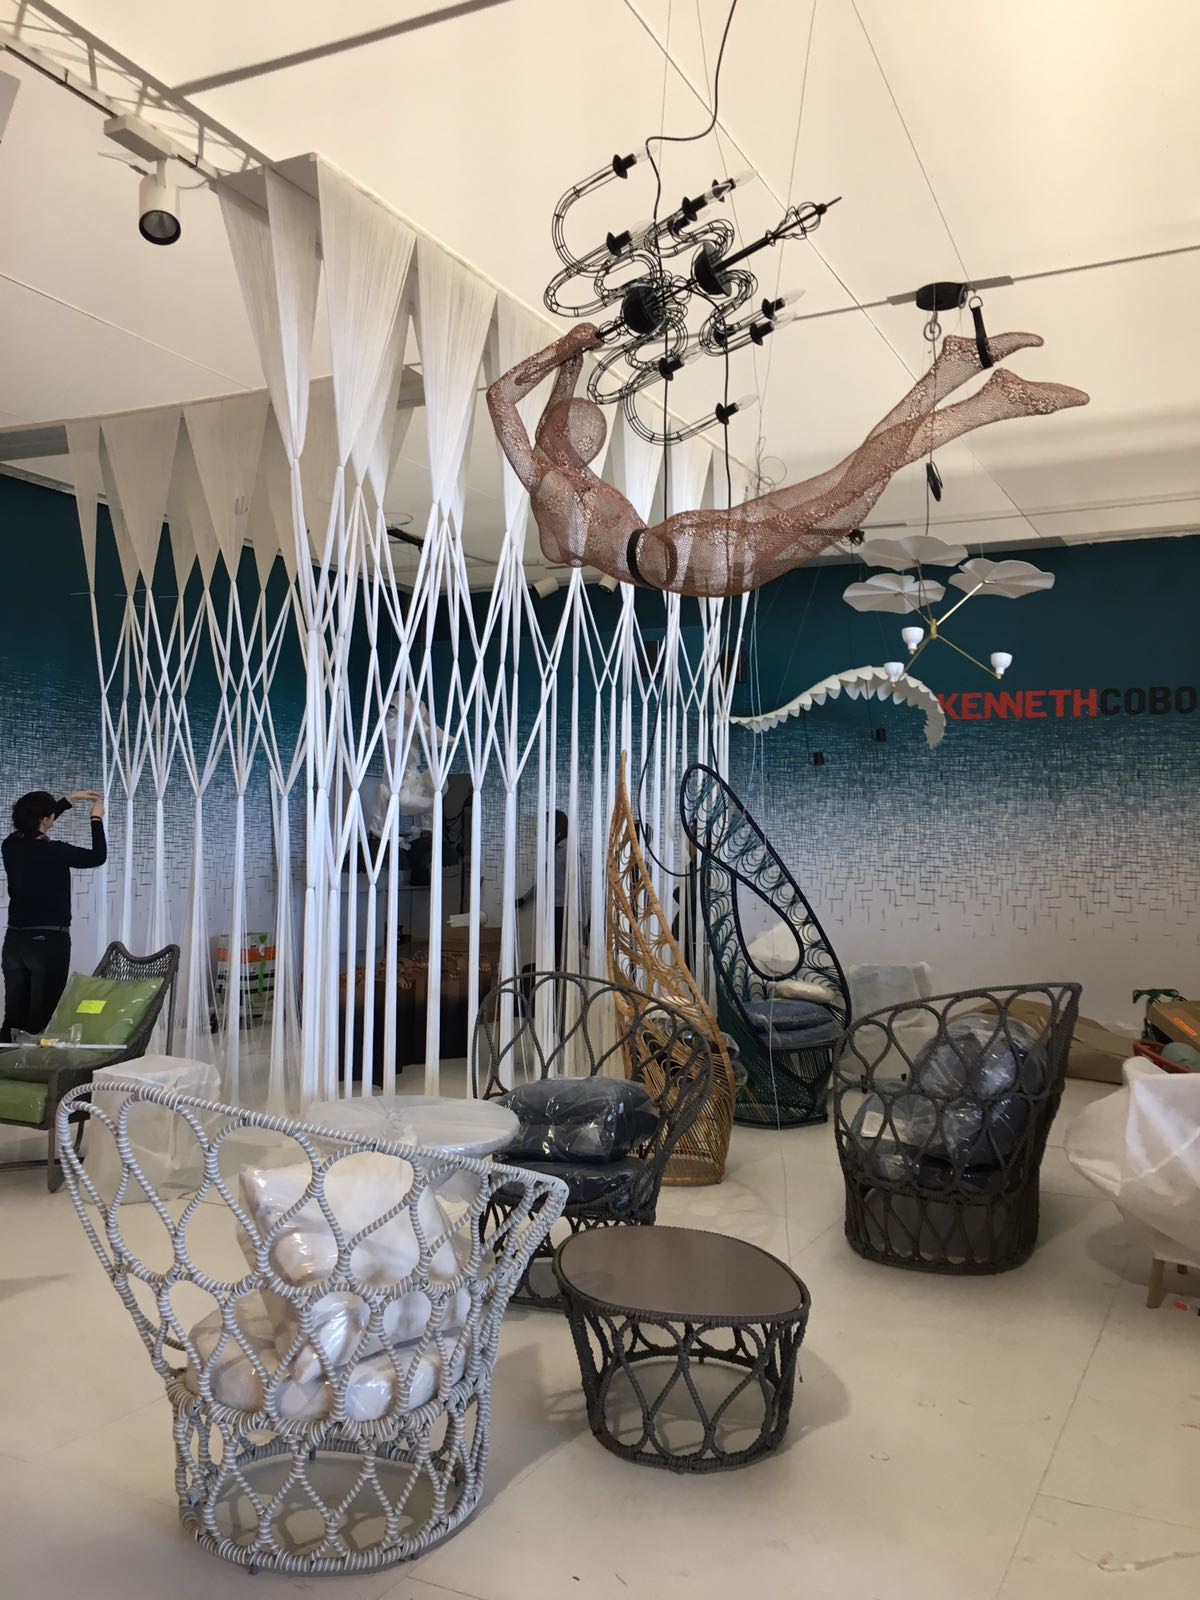 Stands You Must See at Salone del Mobile 2017 Tomorrow salone del mobile 2017 Stands You Must See at Salone del Mobile 2017 Tomorrow Stands You Must See at Salone del Mobile 2017 Tomorrow 6